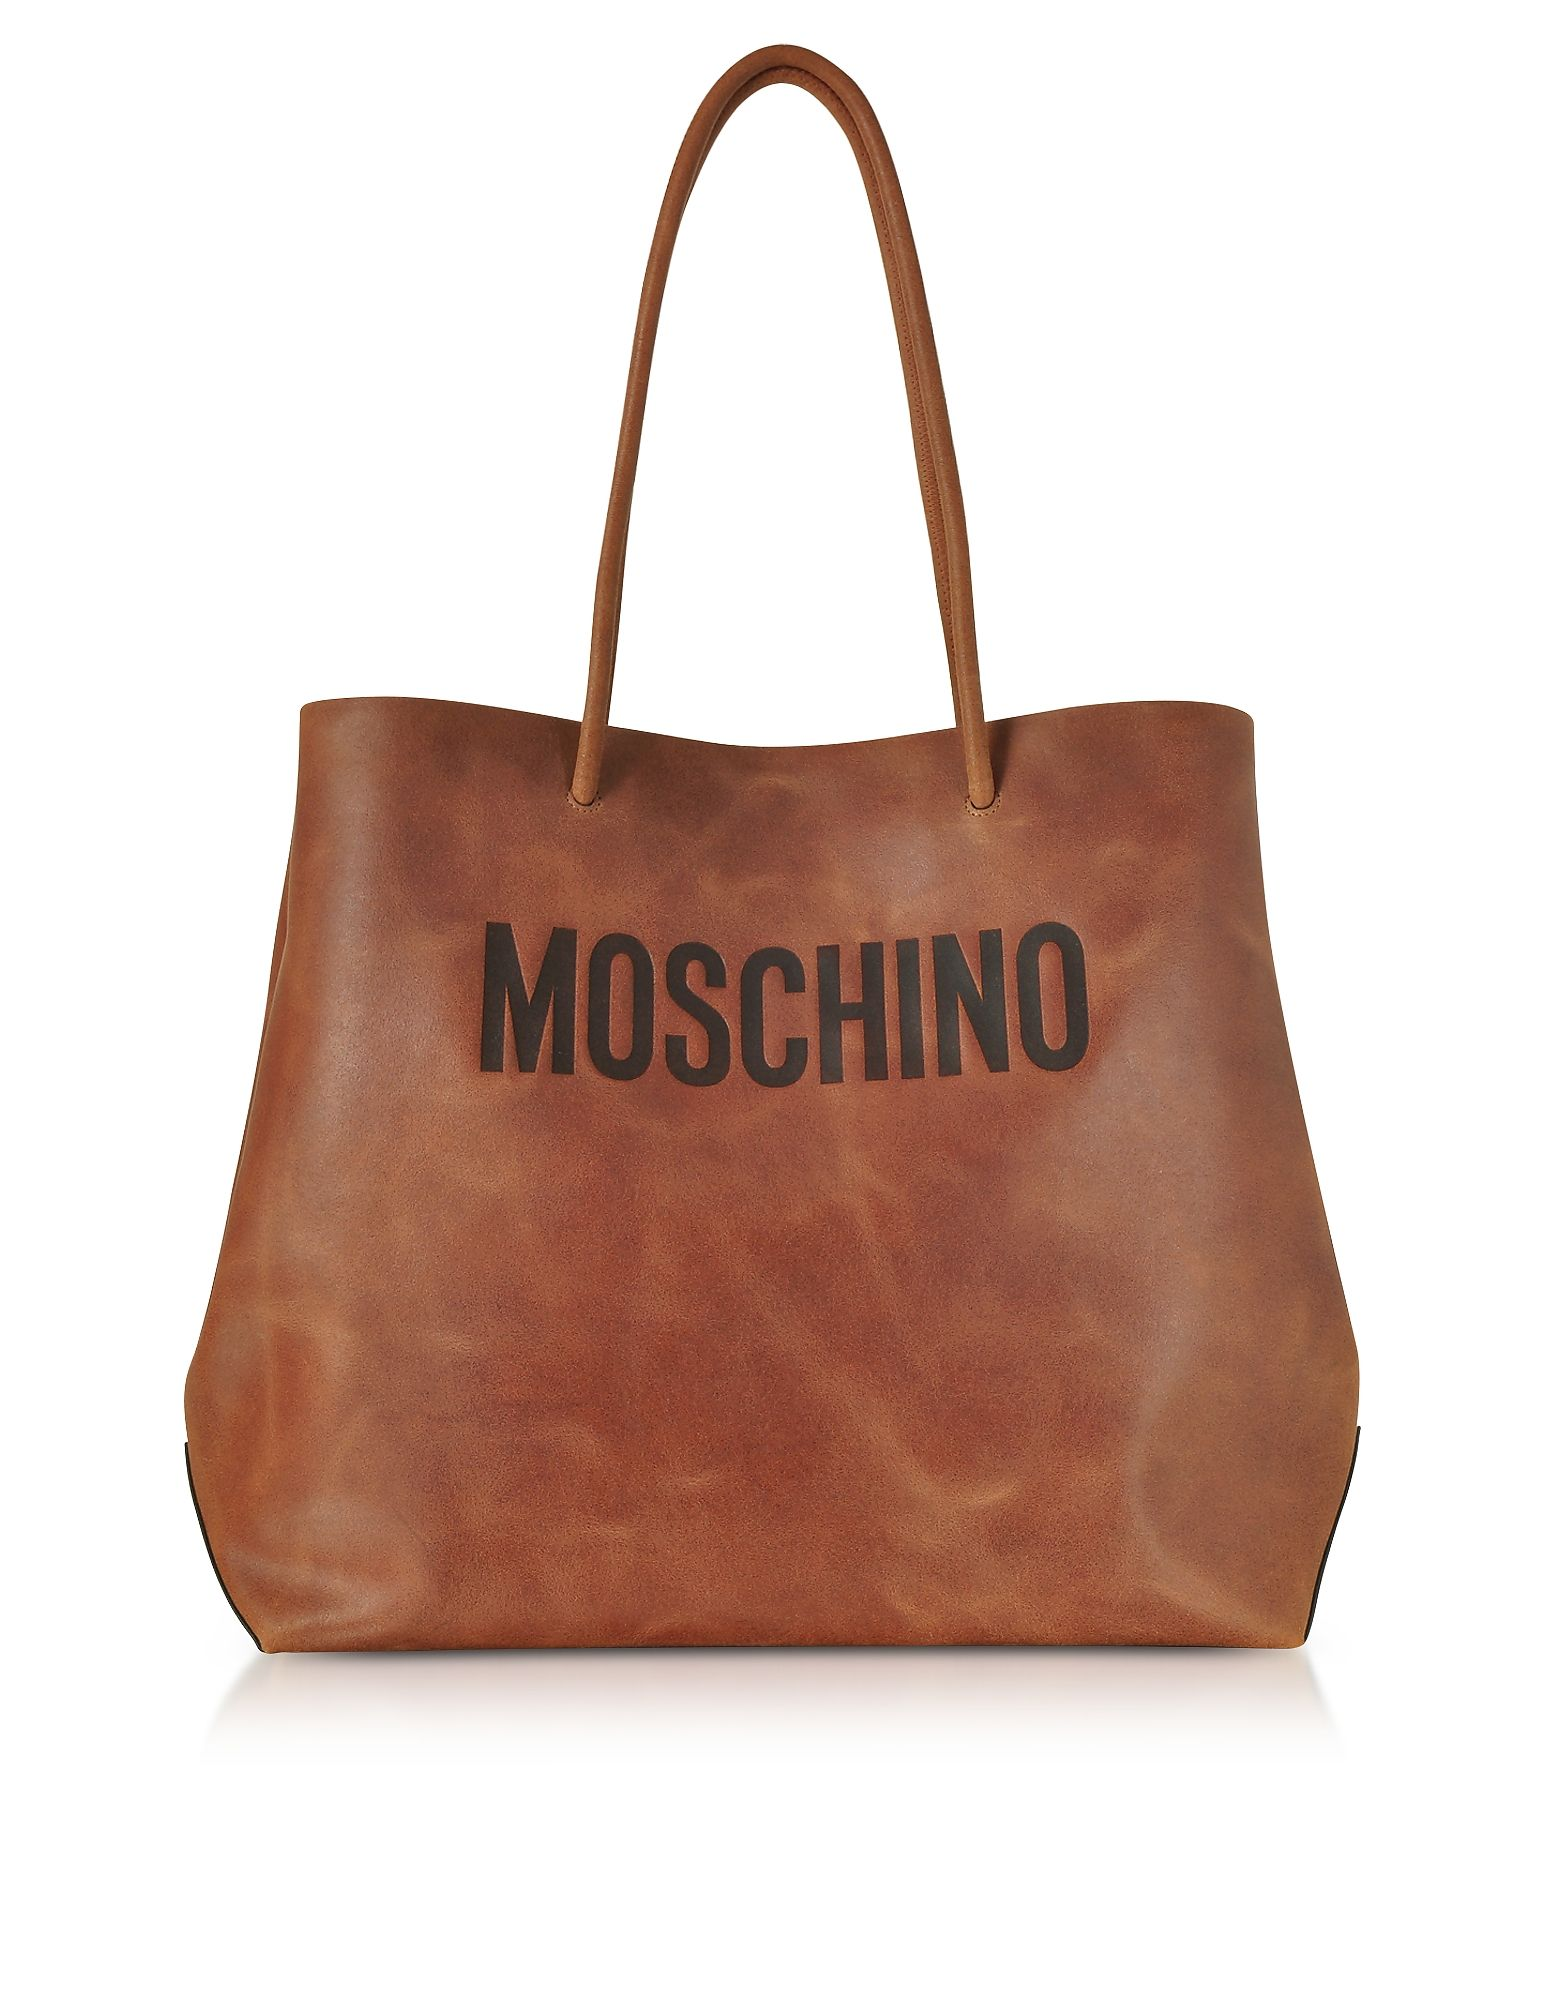 a4df91517aab MOSCHINO BROWN LEATHER TOTE BAG W SIGNATURE LOGO.  moschino  bags  leather   hand bags  tote